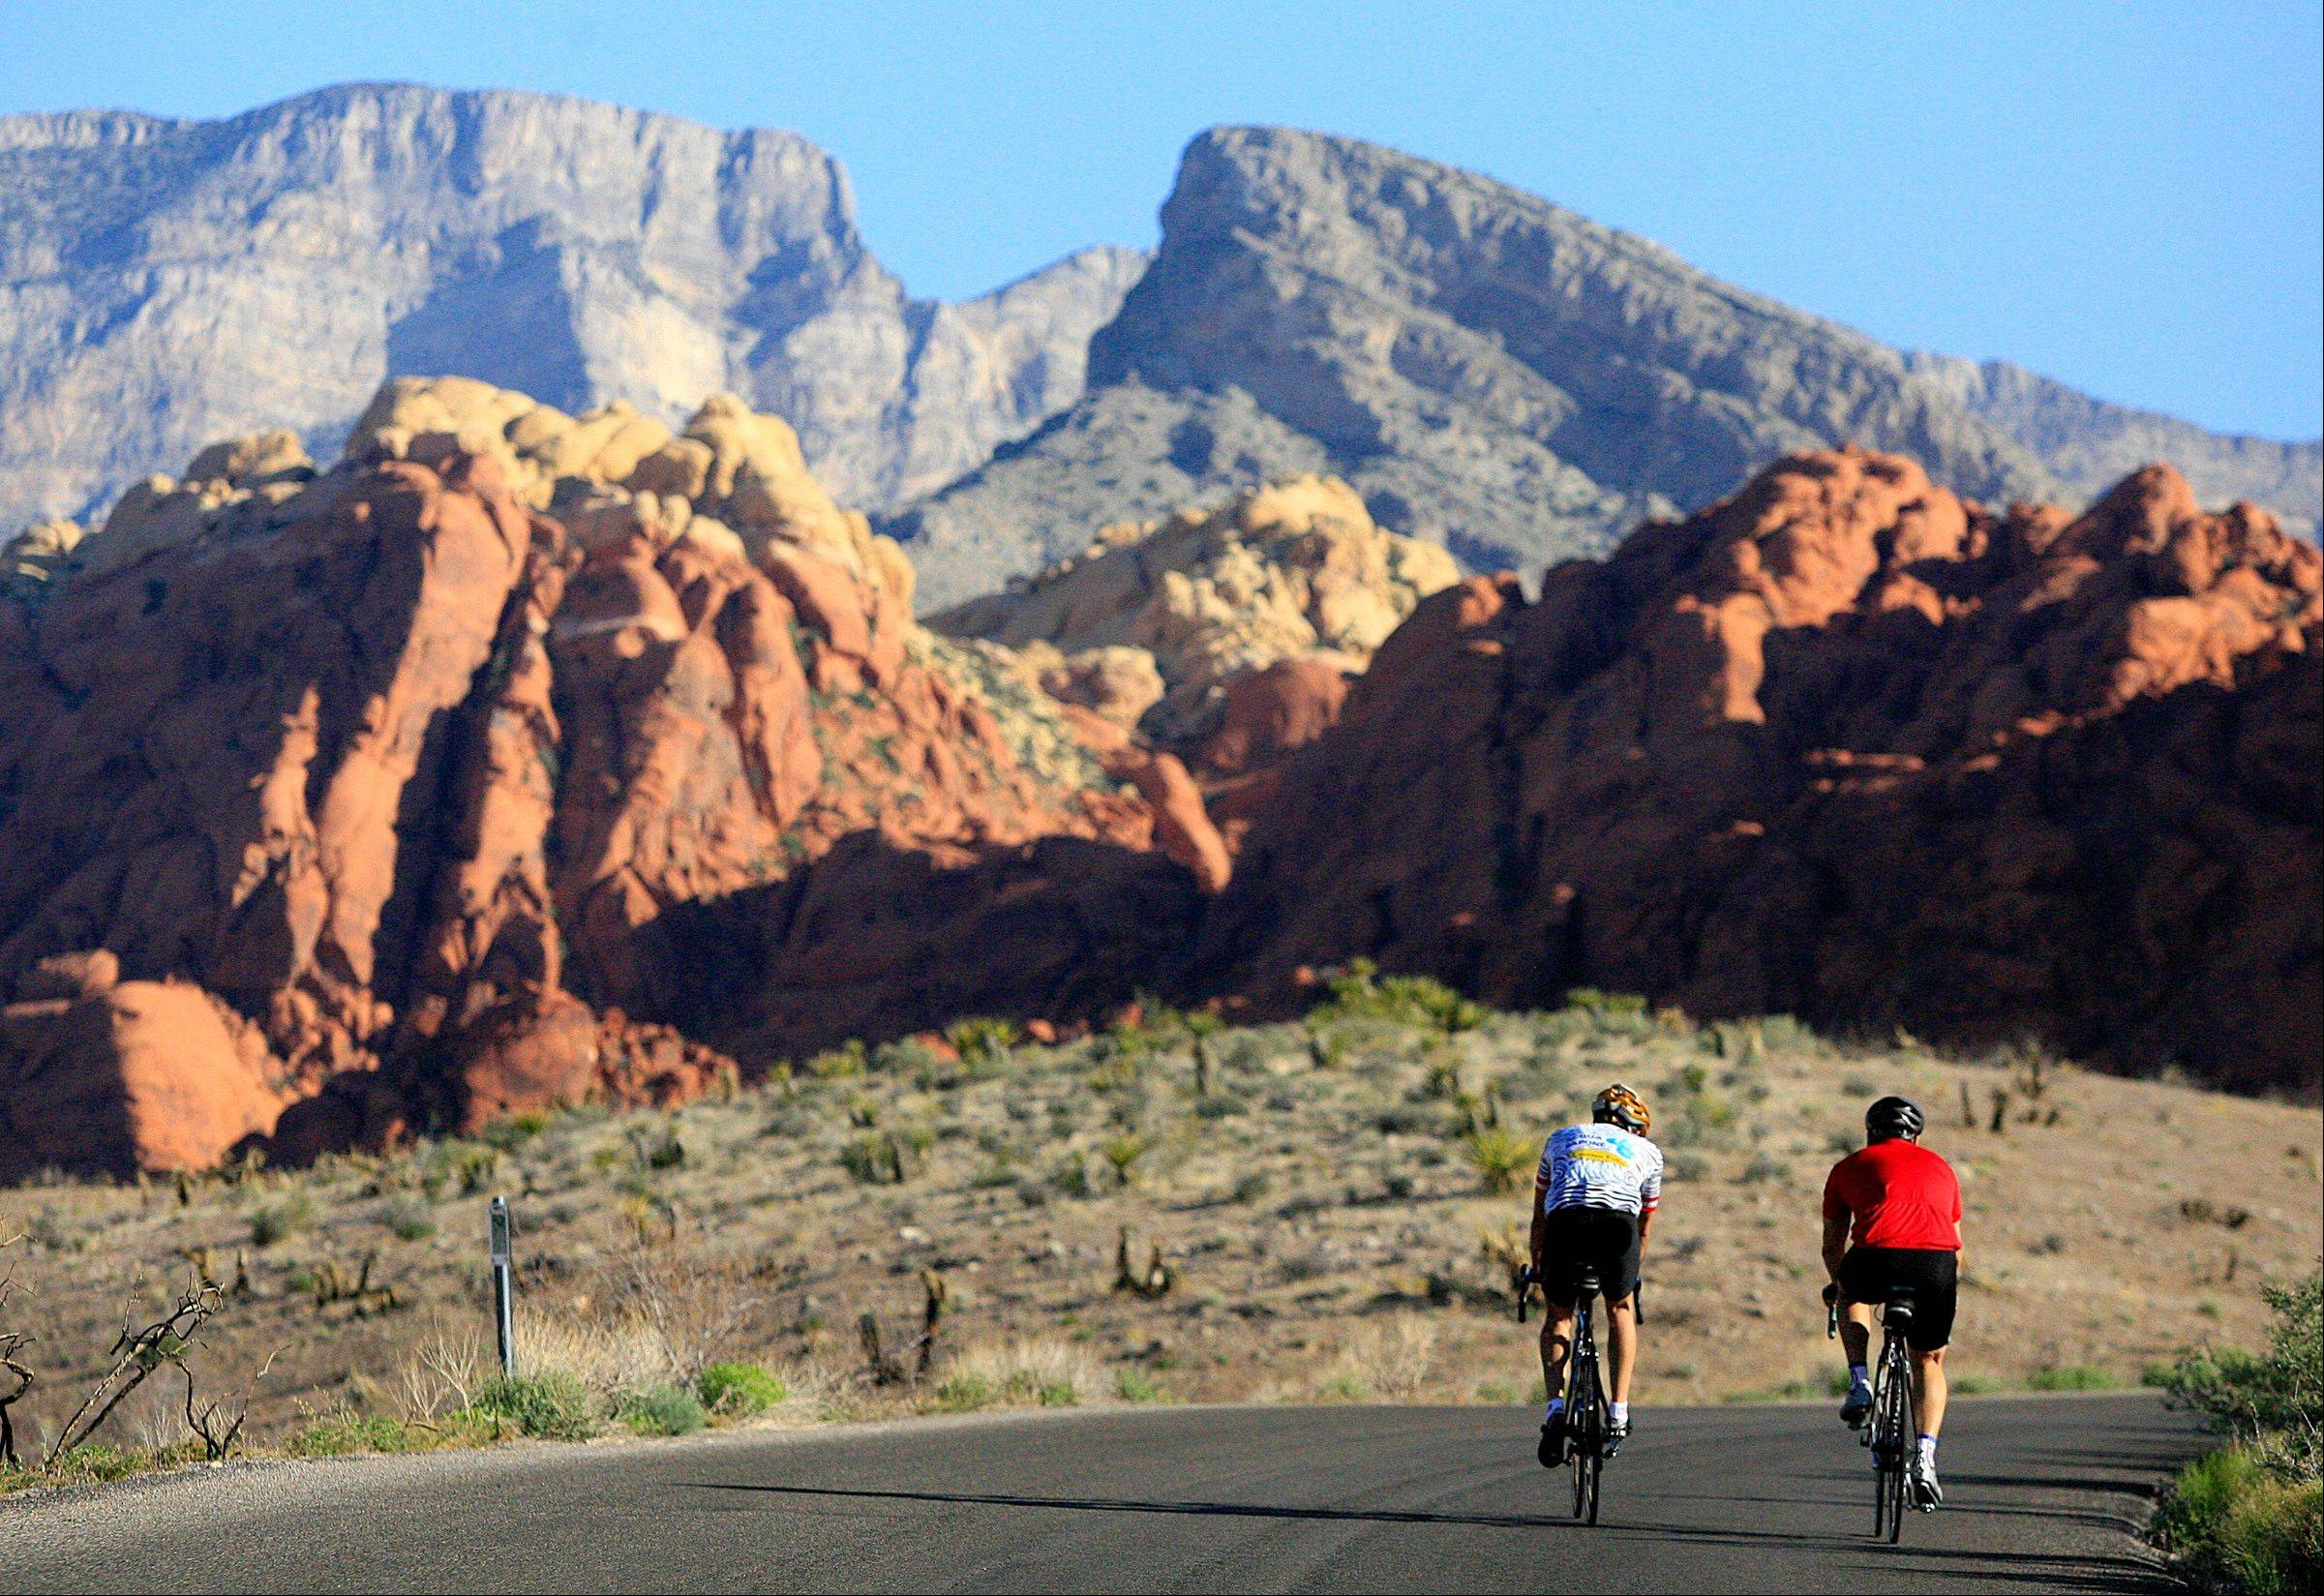 Two cyclists ride along the 13-mile-long scenic drive at Red Rock Canyon National Conservation Area in Nevada. These towering red sandstone cliffs, some reaching 3,000 feet, are just 15 miles west of metropolitan Las Vegas.